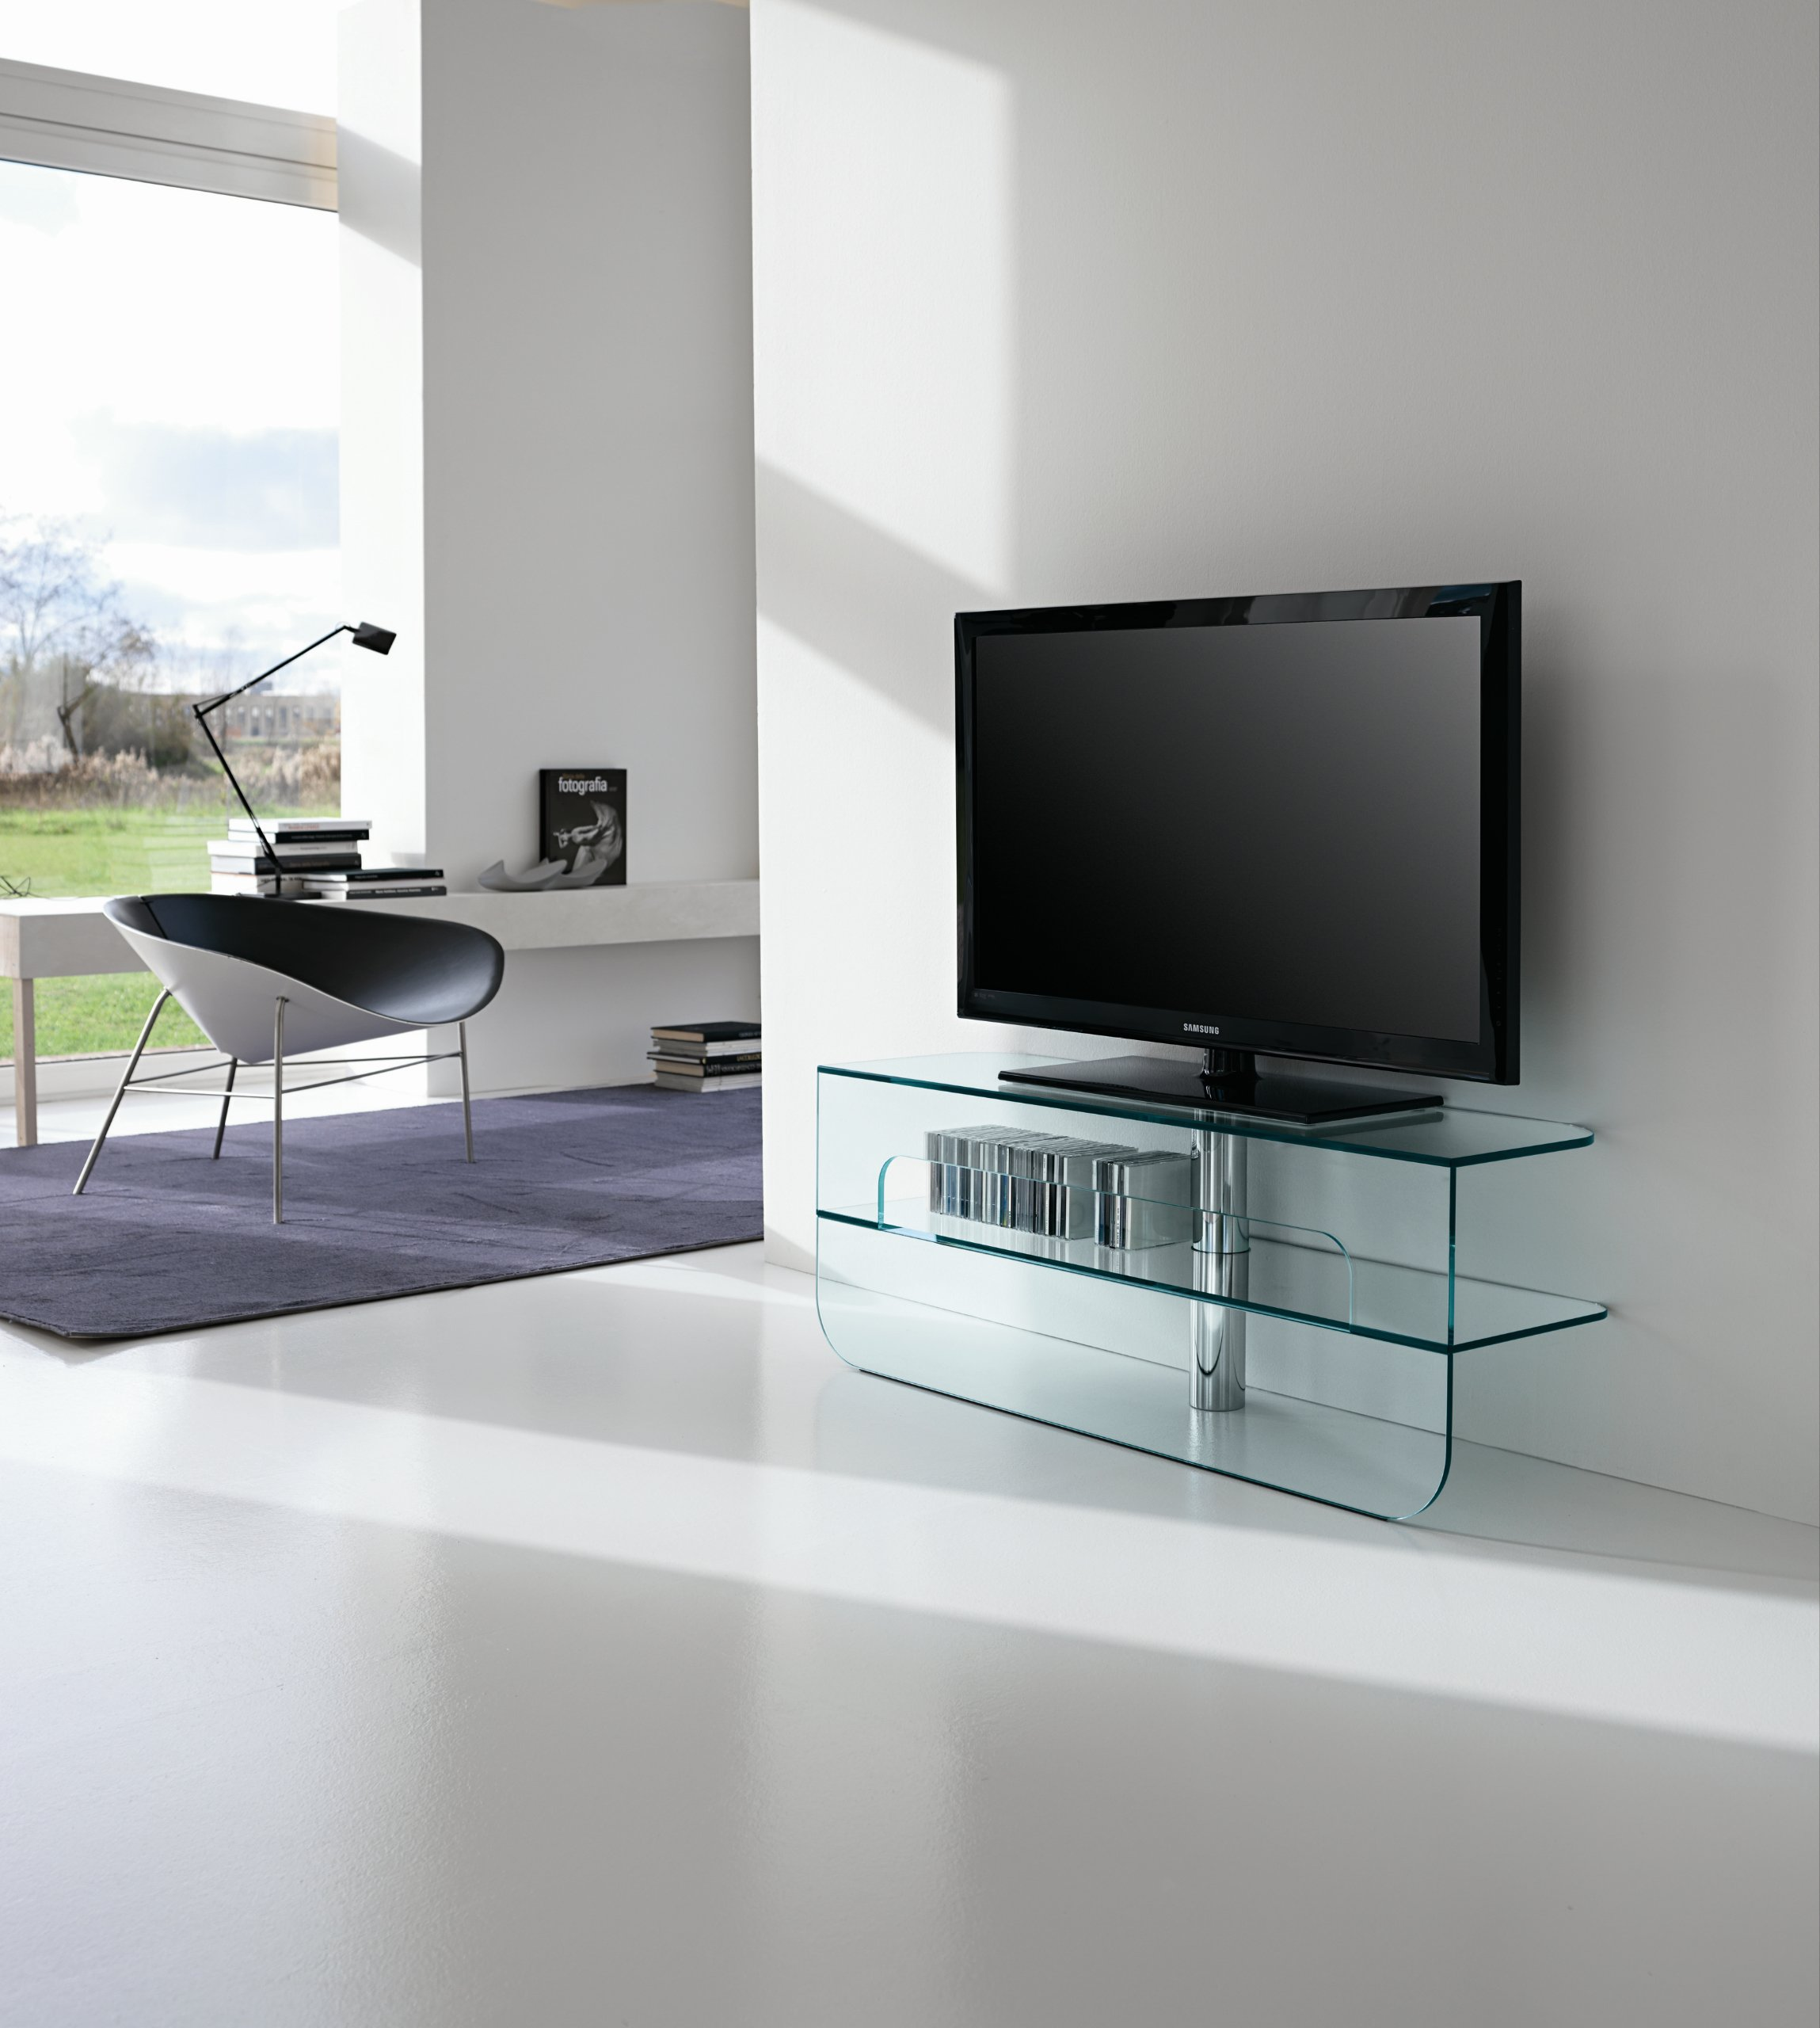 meuble tv bas en verre plasmatik by t d tonelli design design karim rashid. Black Bedroom Furniture Sets. Home Design Ideas